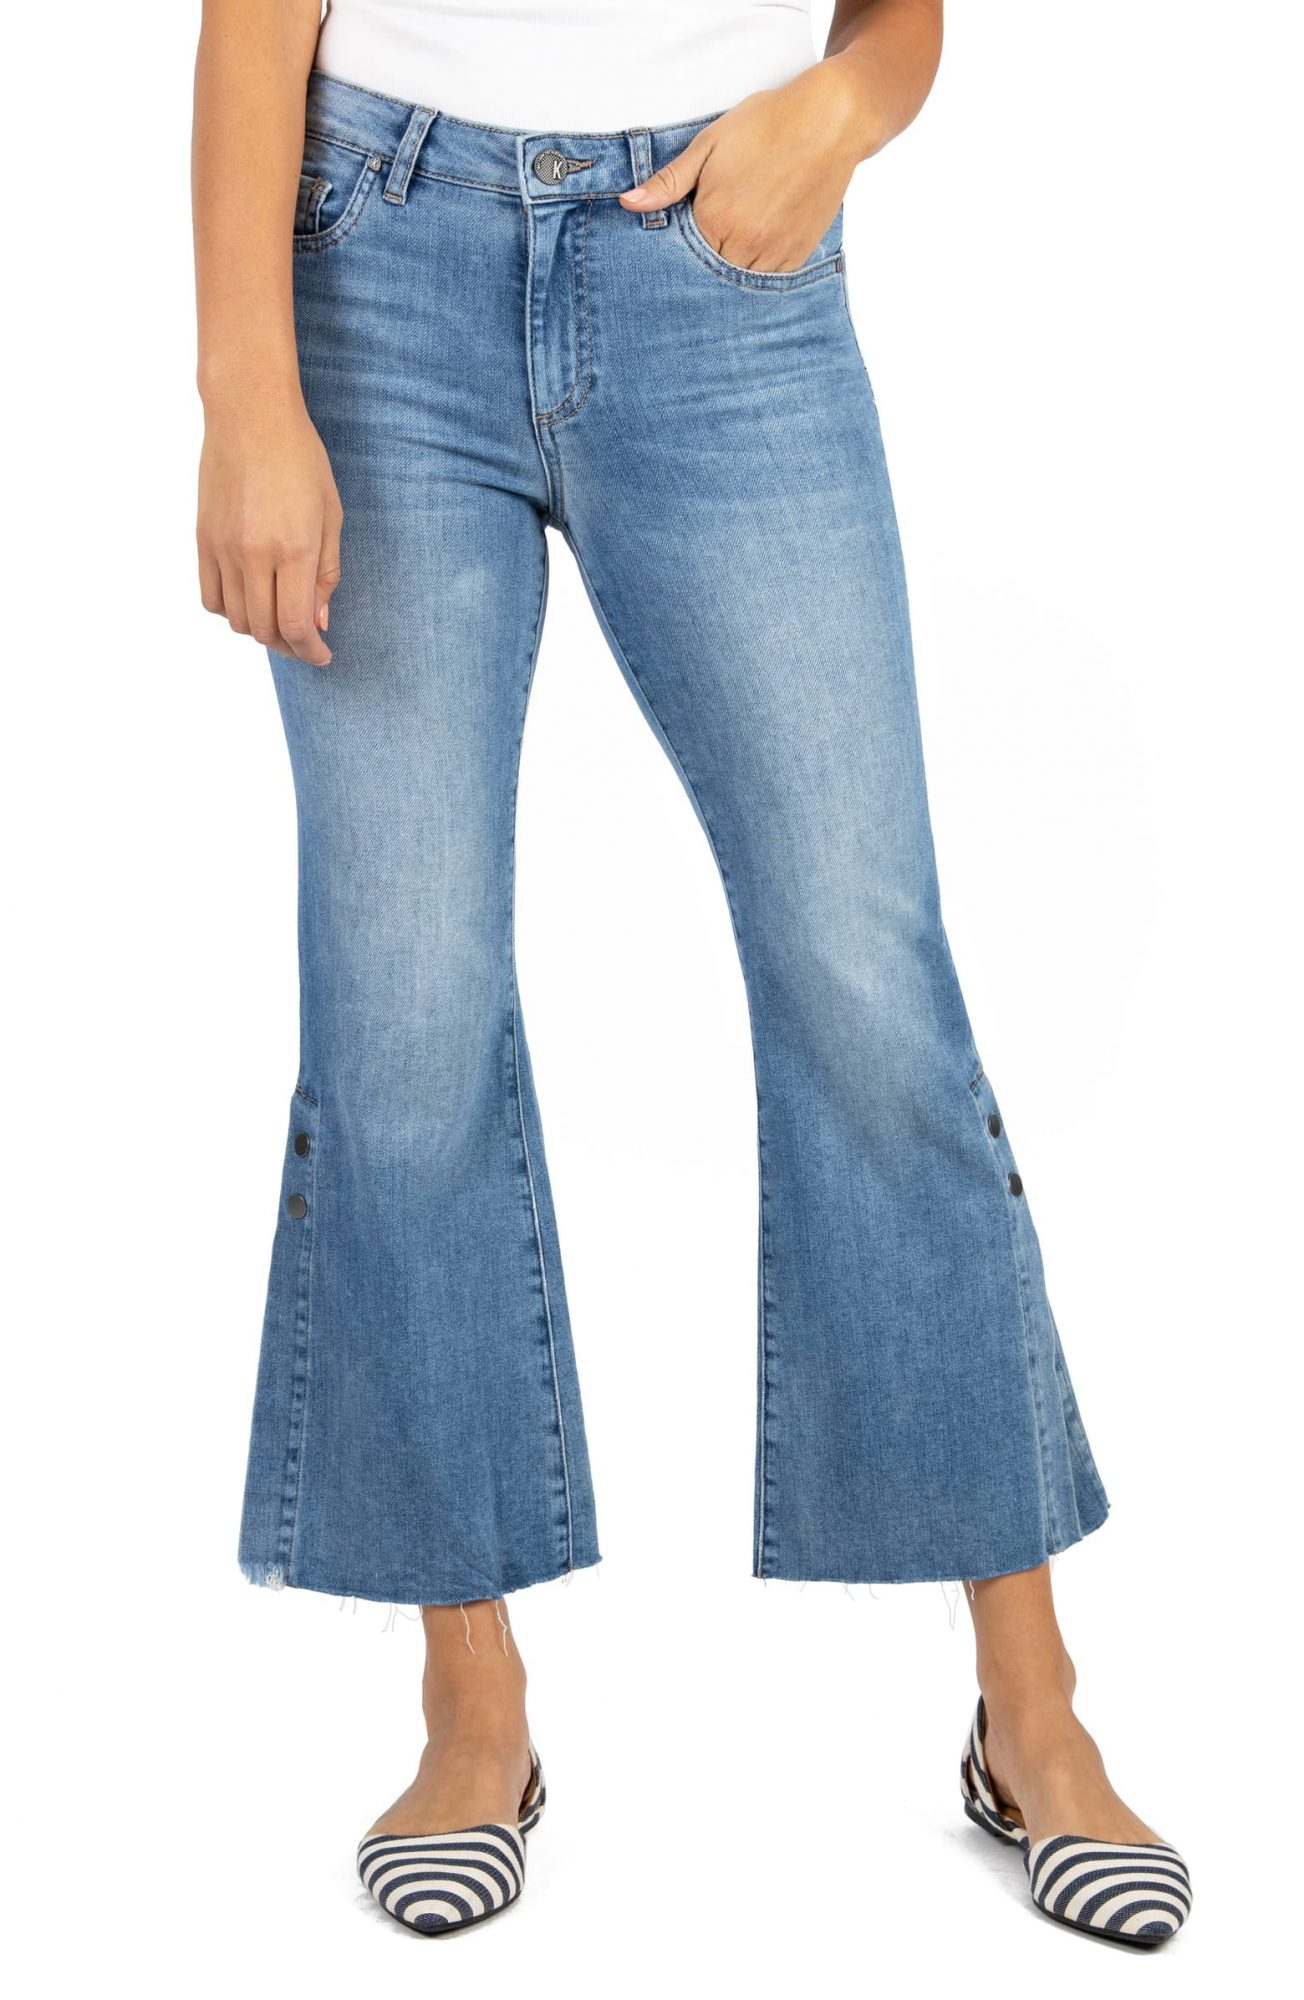 nordstrom flare jeans, best jeans for each zodiac sign